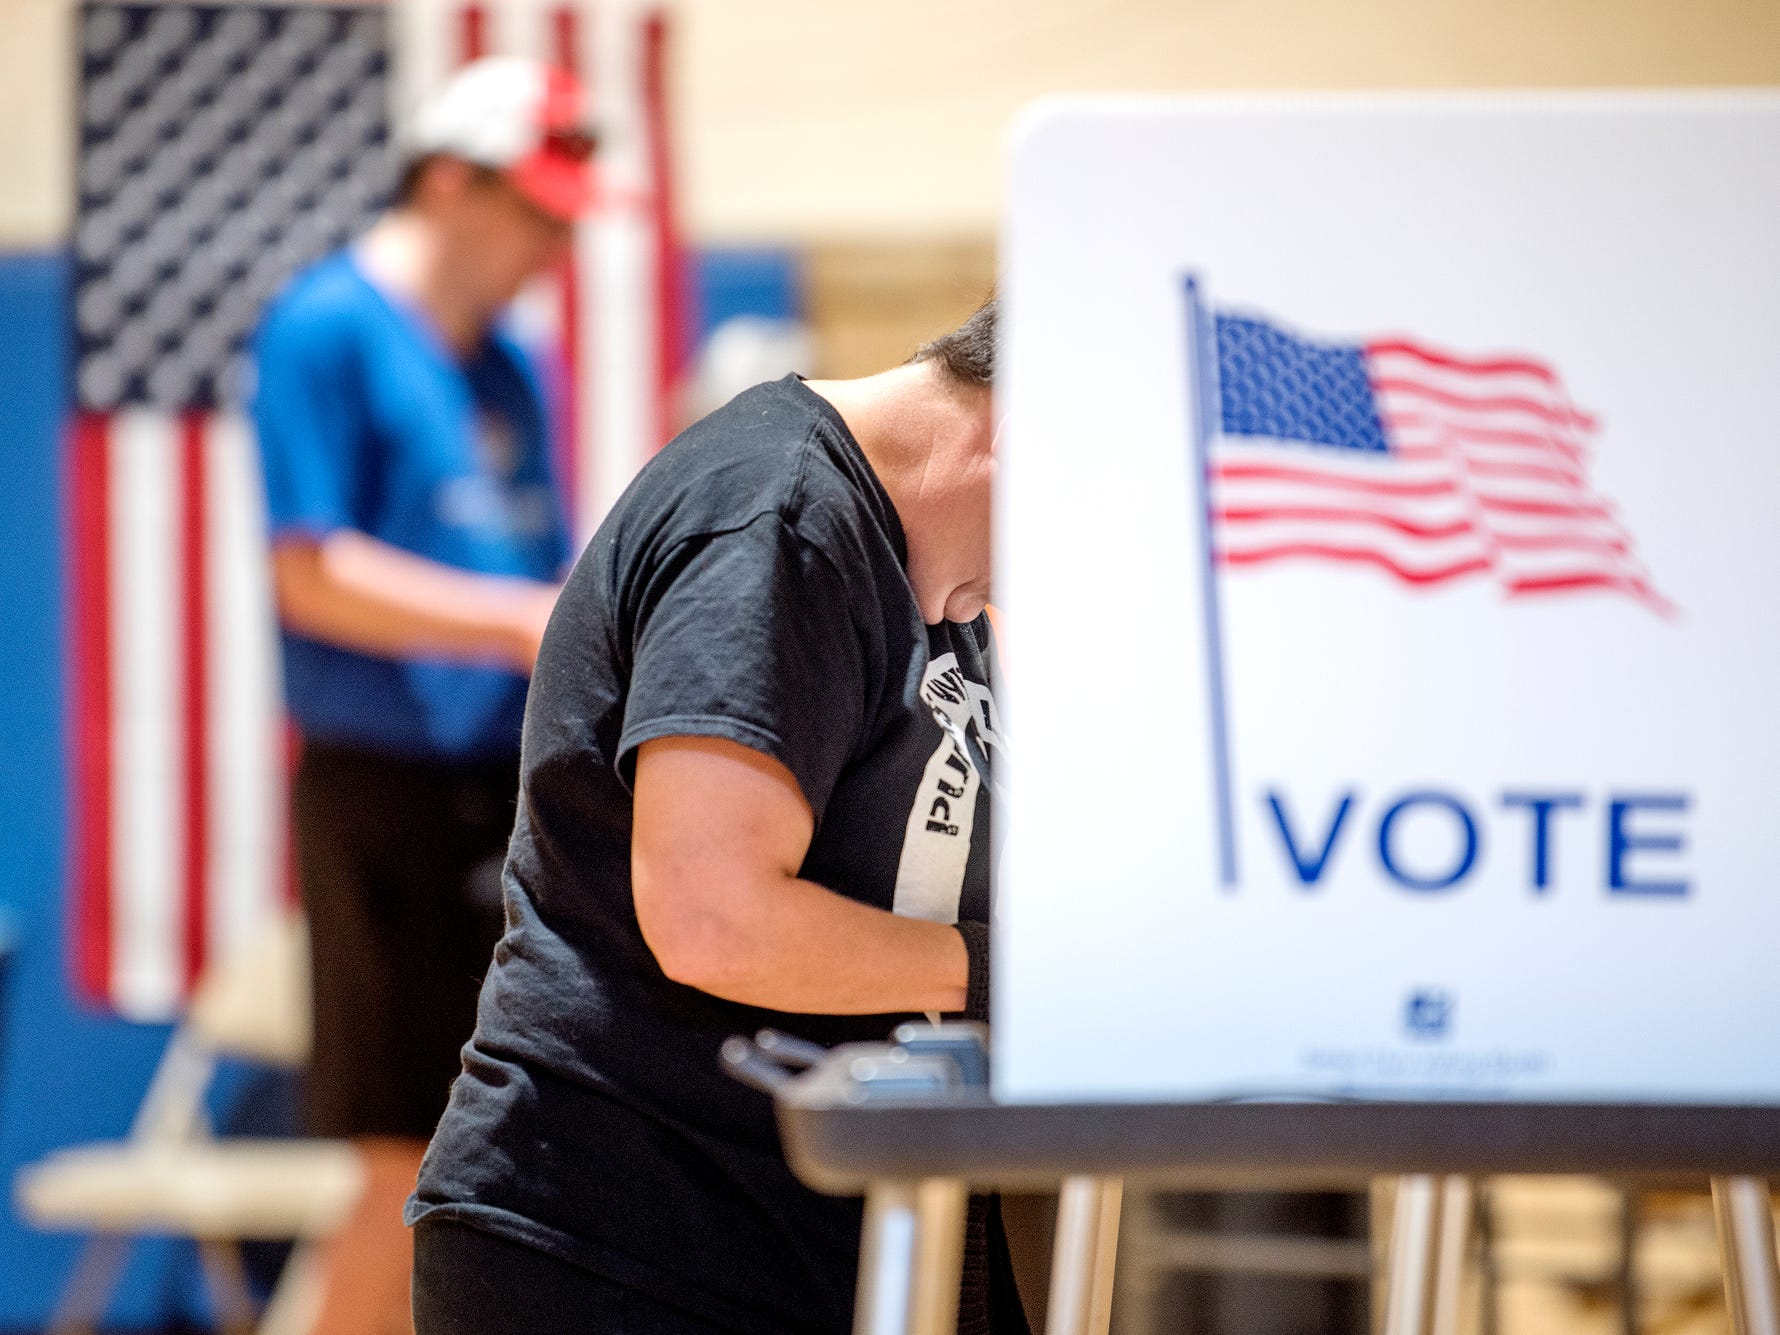 A voter fills out a ballot on Tuesday, Aug. 7, 2018, at the polling place inside the Foster Community Center in Lansing.